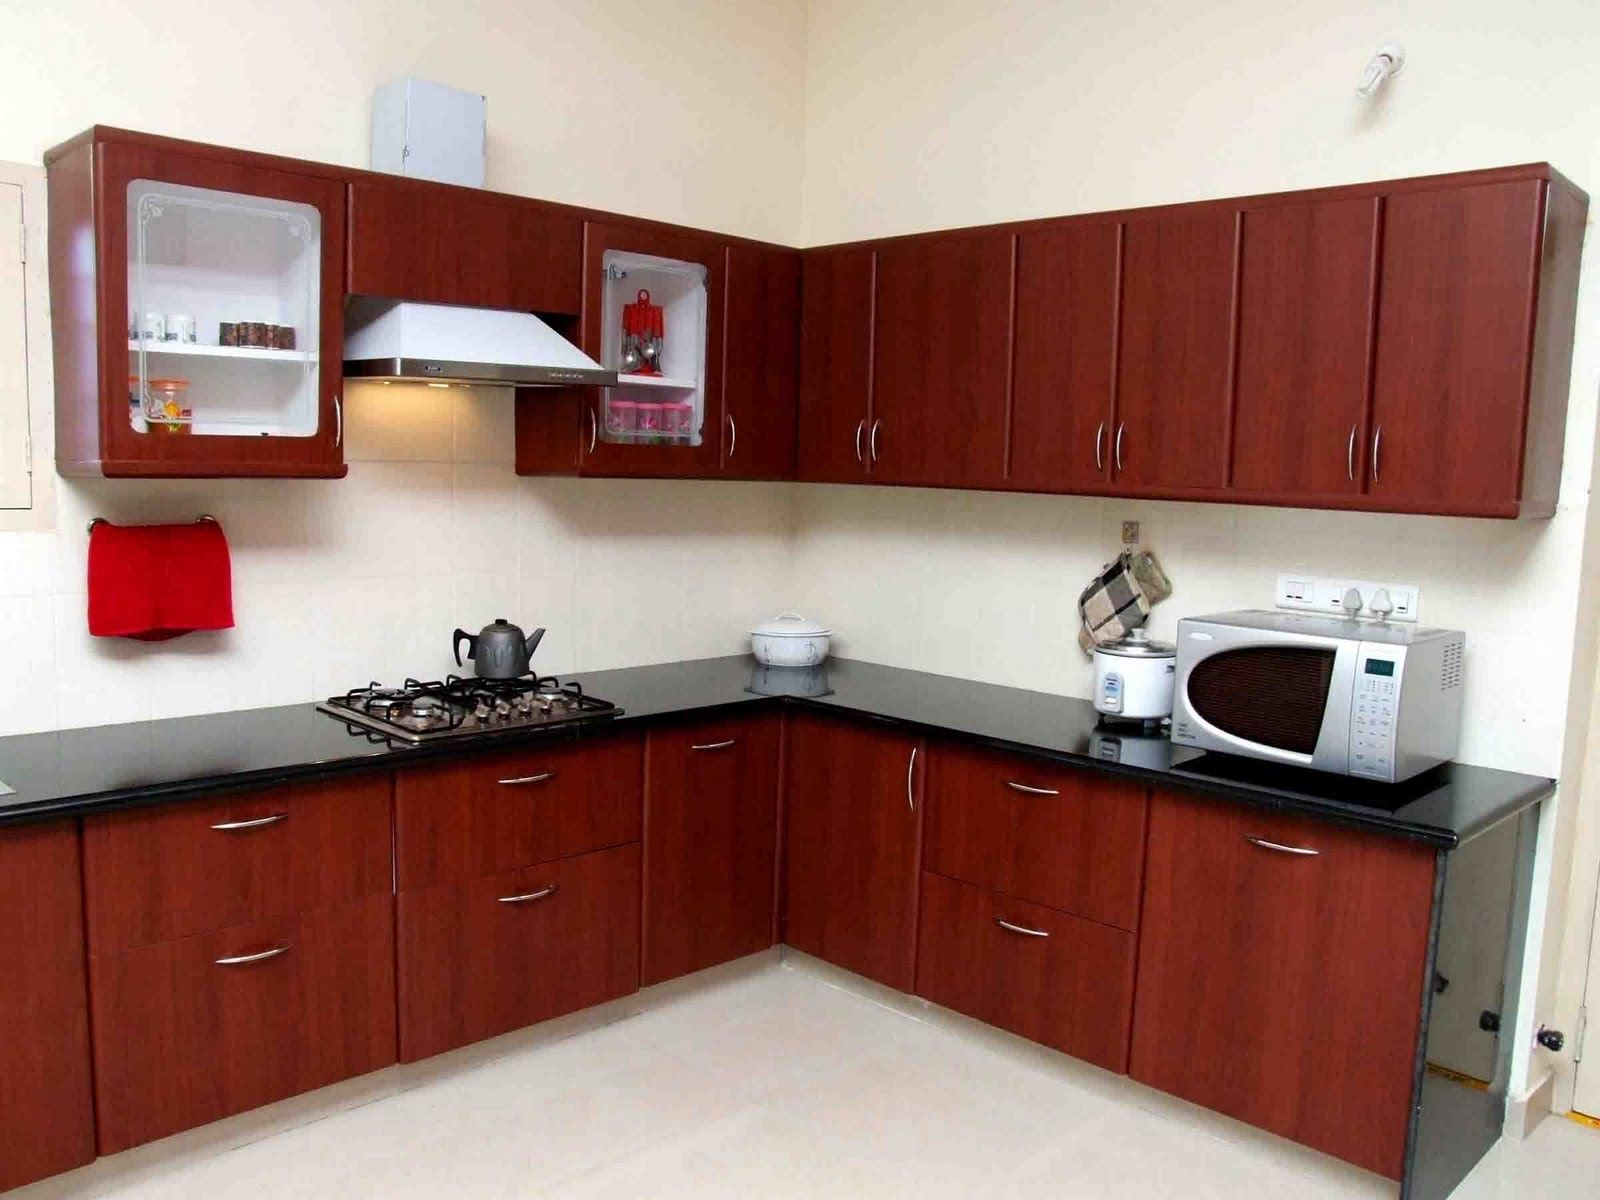 modular kitchen wall cabinets ken onion knives pin by hindustan interiors on new